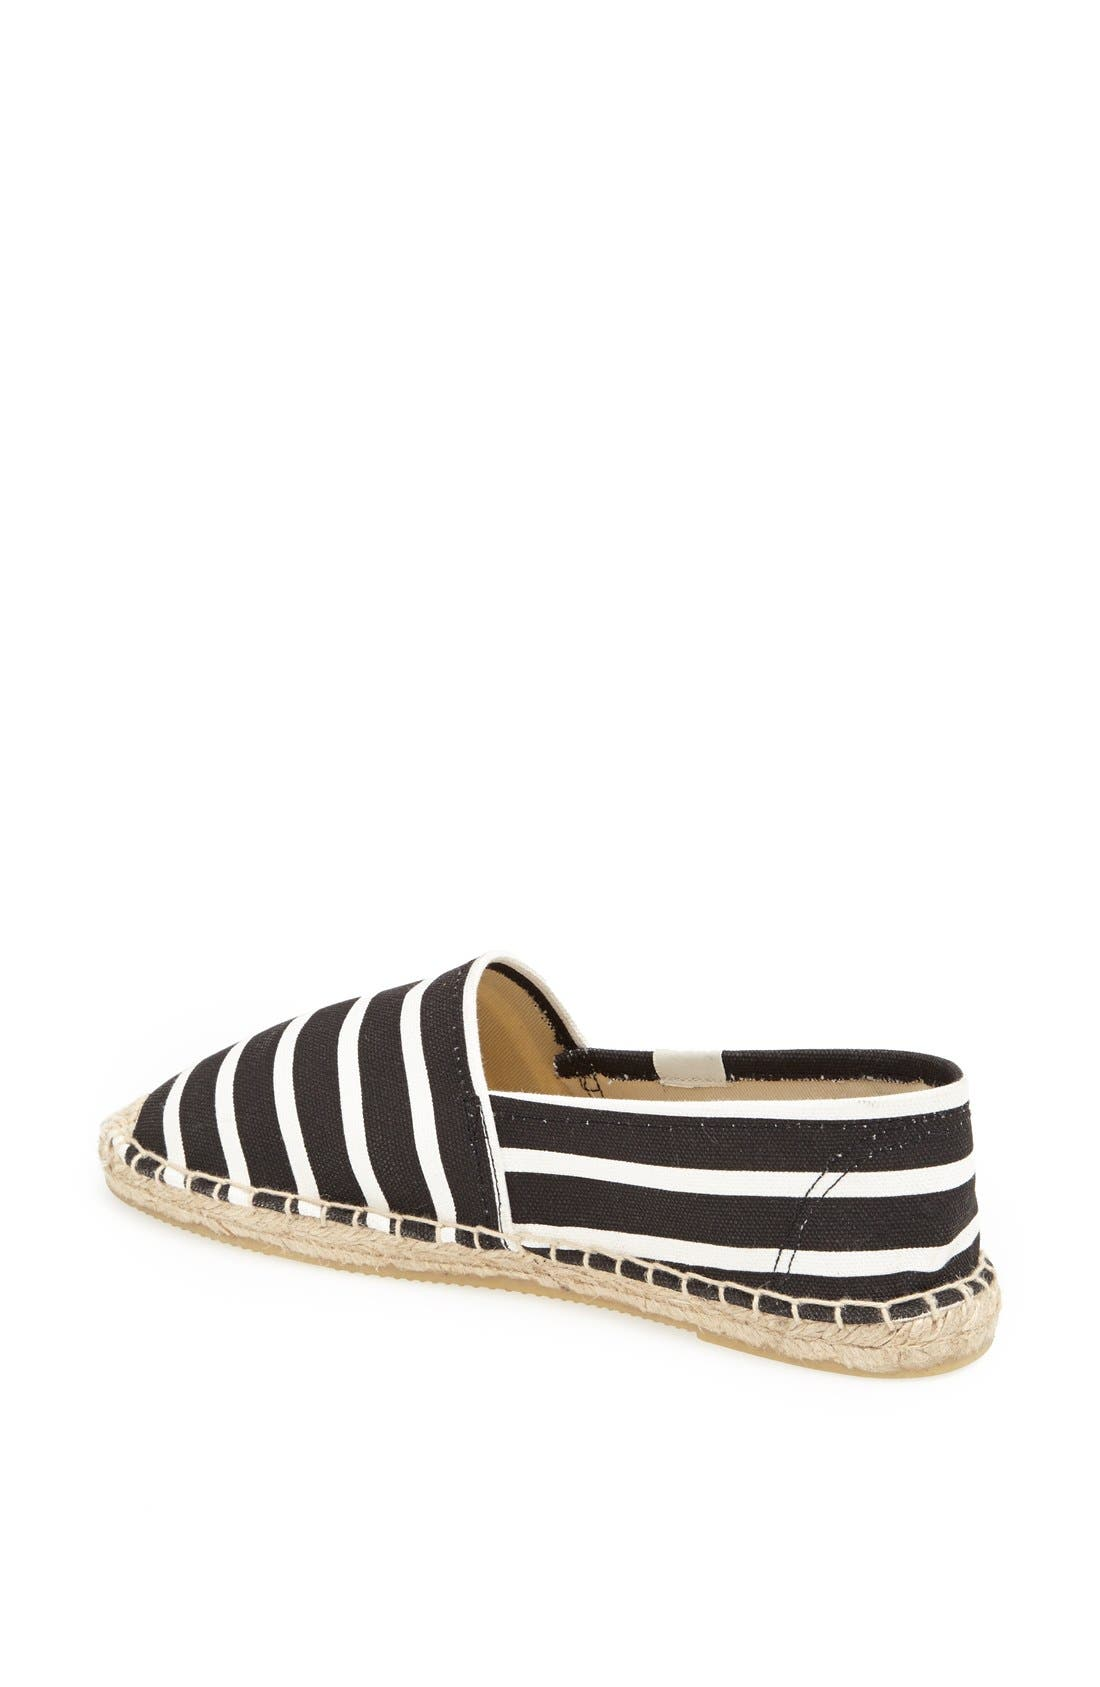 'Classic' Espadrille Slip-On,                             Alternate thumbnail 2, color,                             001